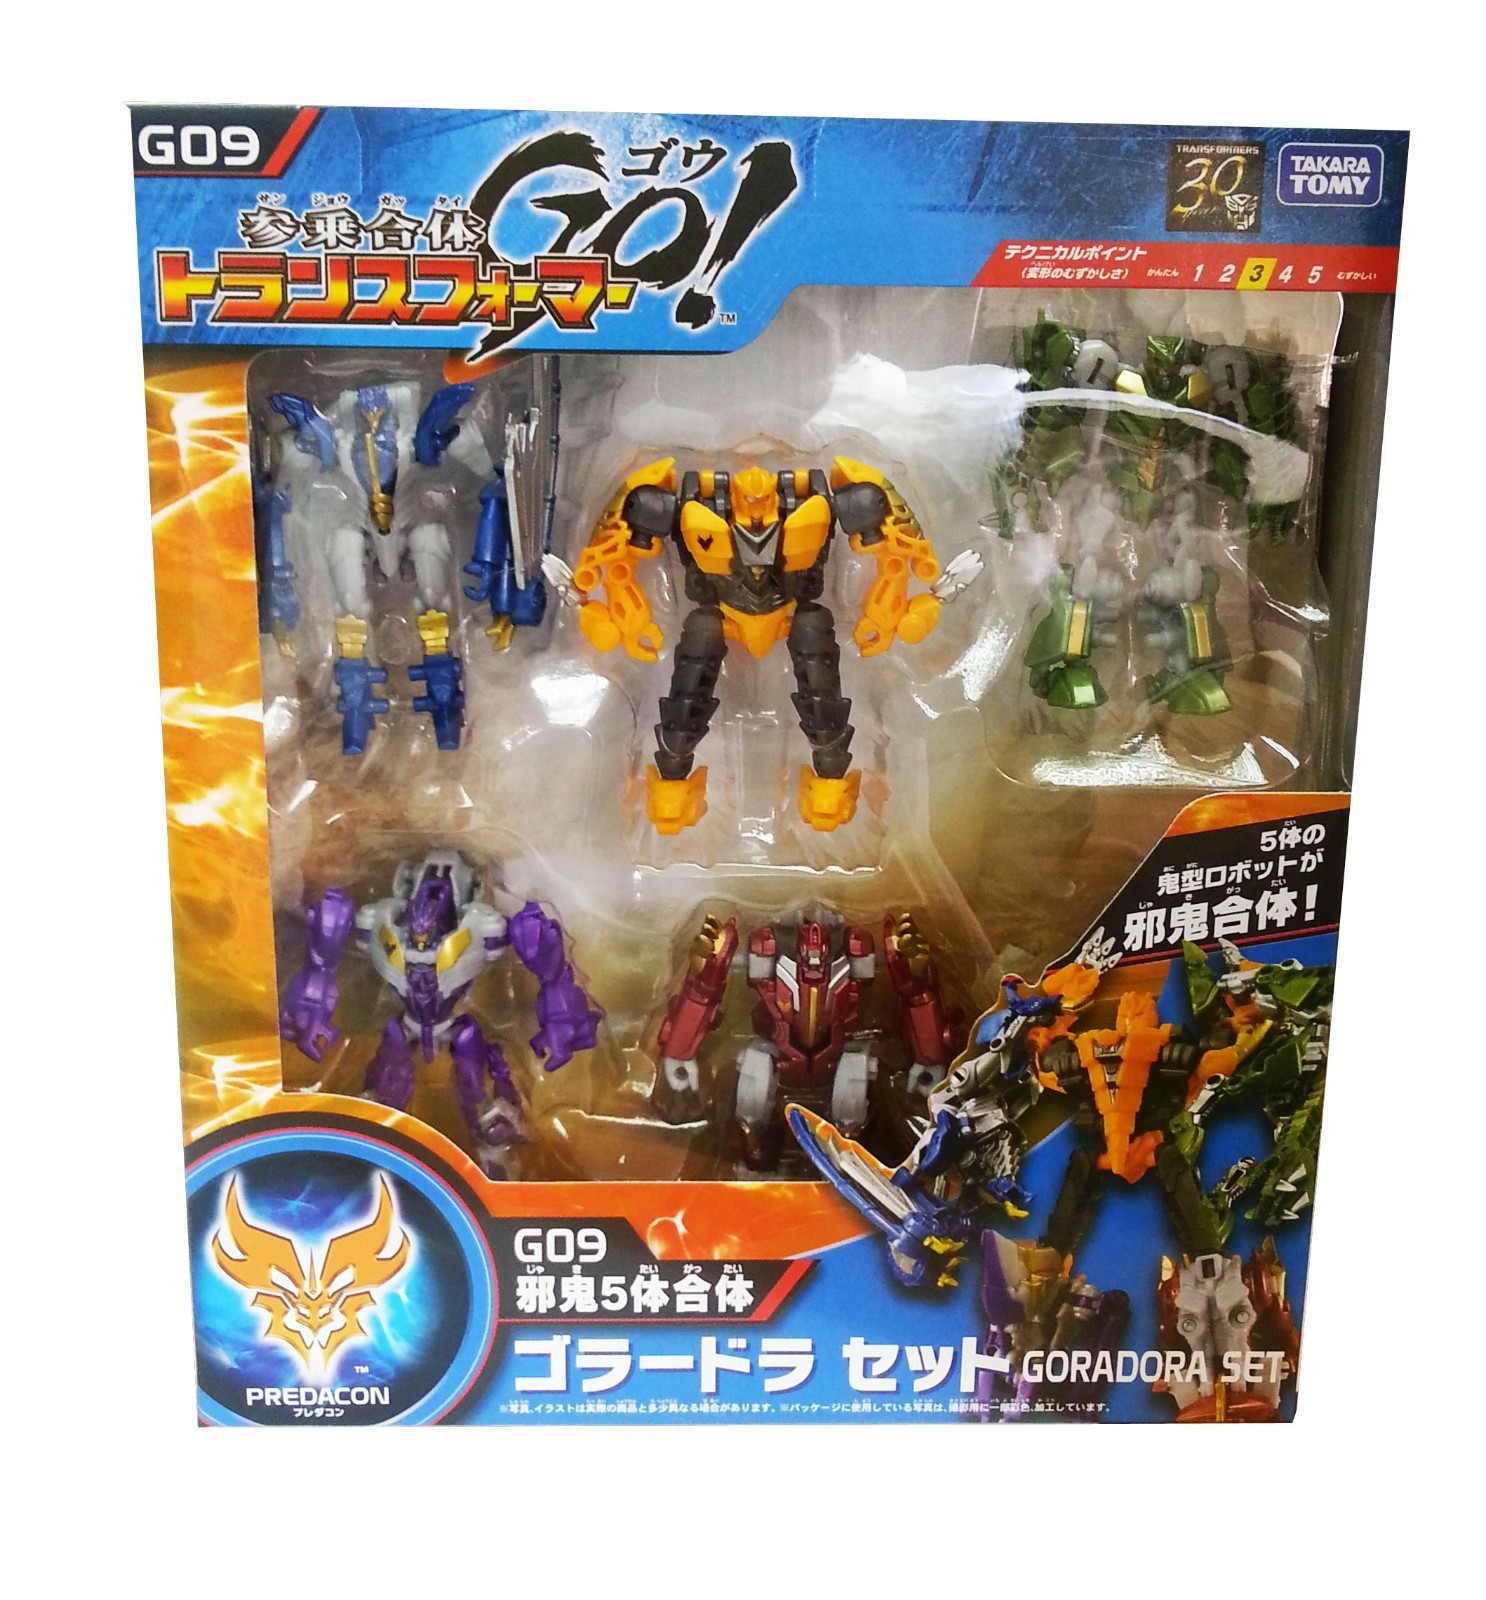 Takara Transformers Go! G-09 Evil Demon Combination Gorador